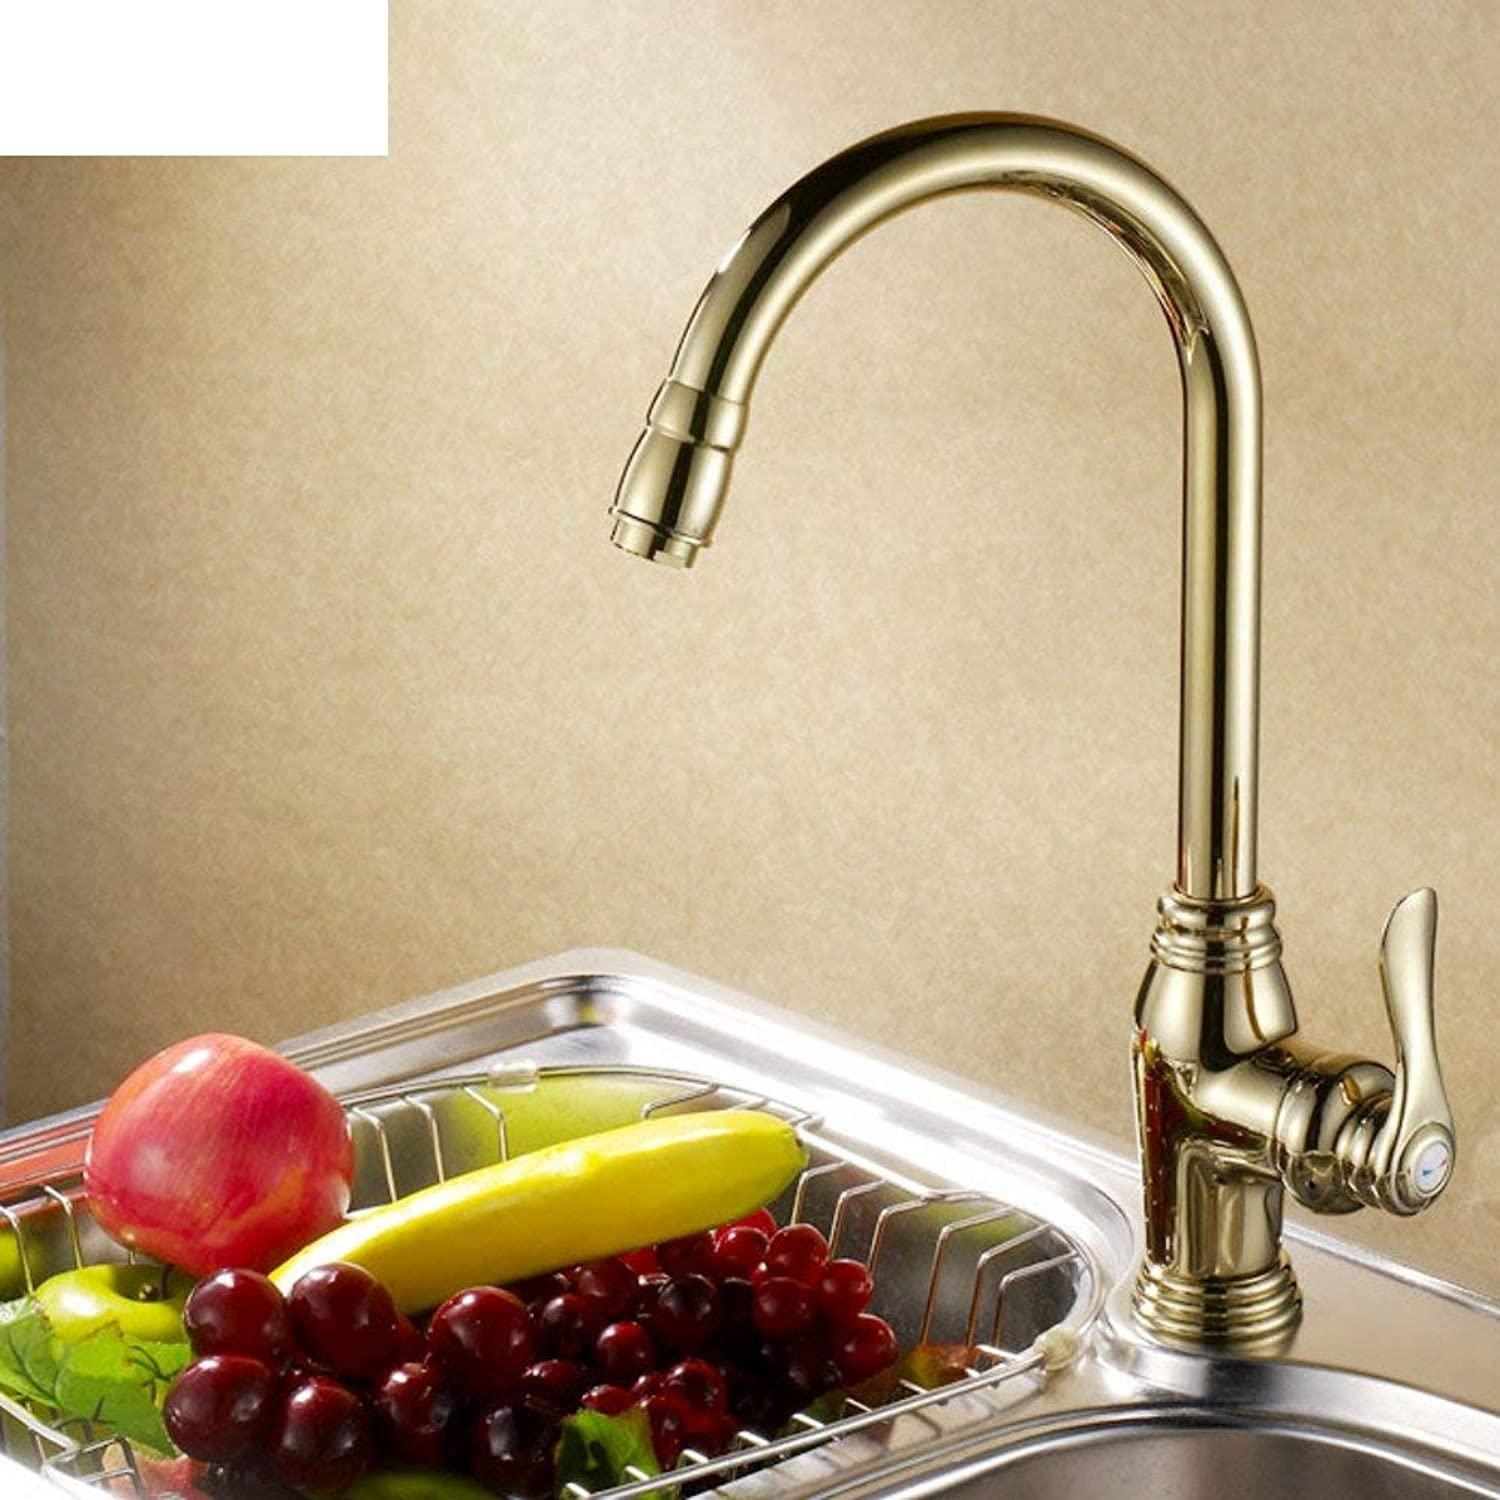 FuweiEncore Kitchen faucets Tap both hot and cold Vegetables basin faucet (color   -, Size   -)